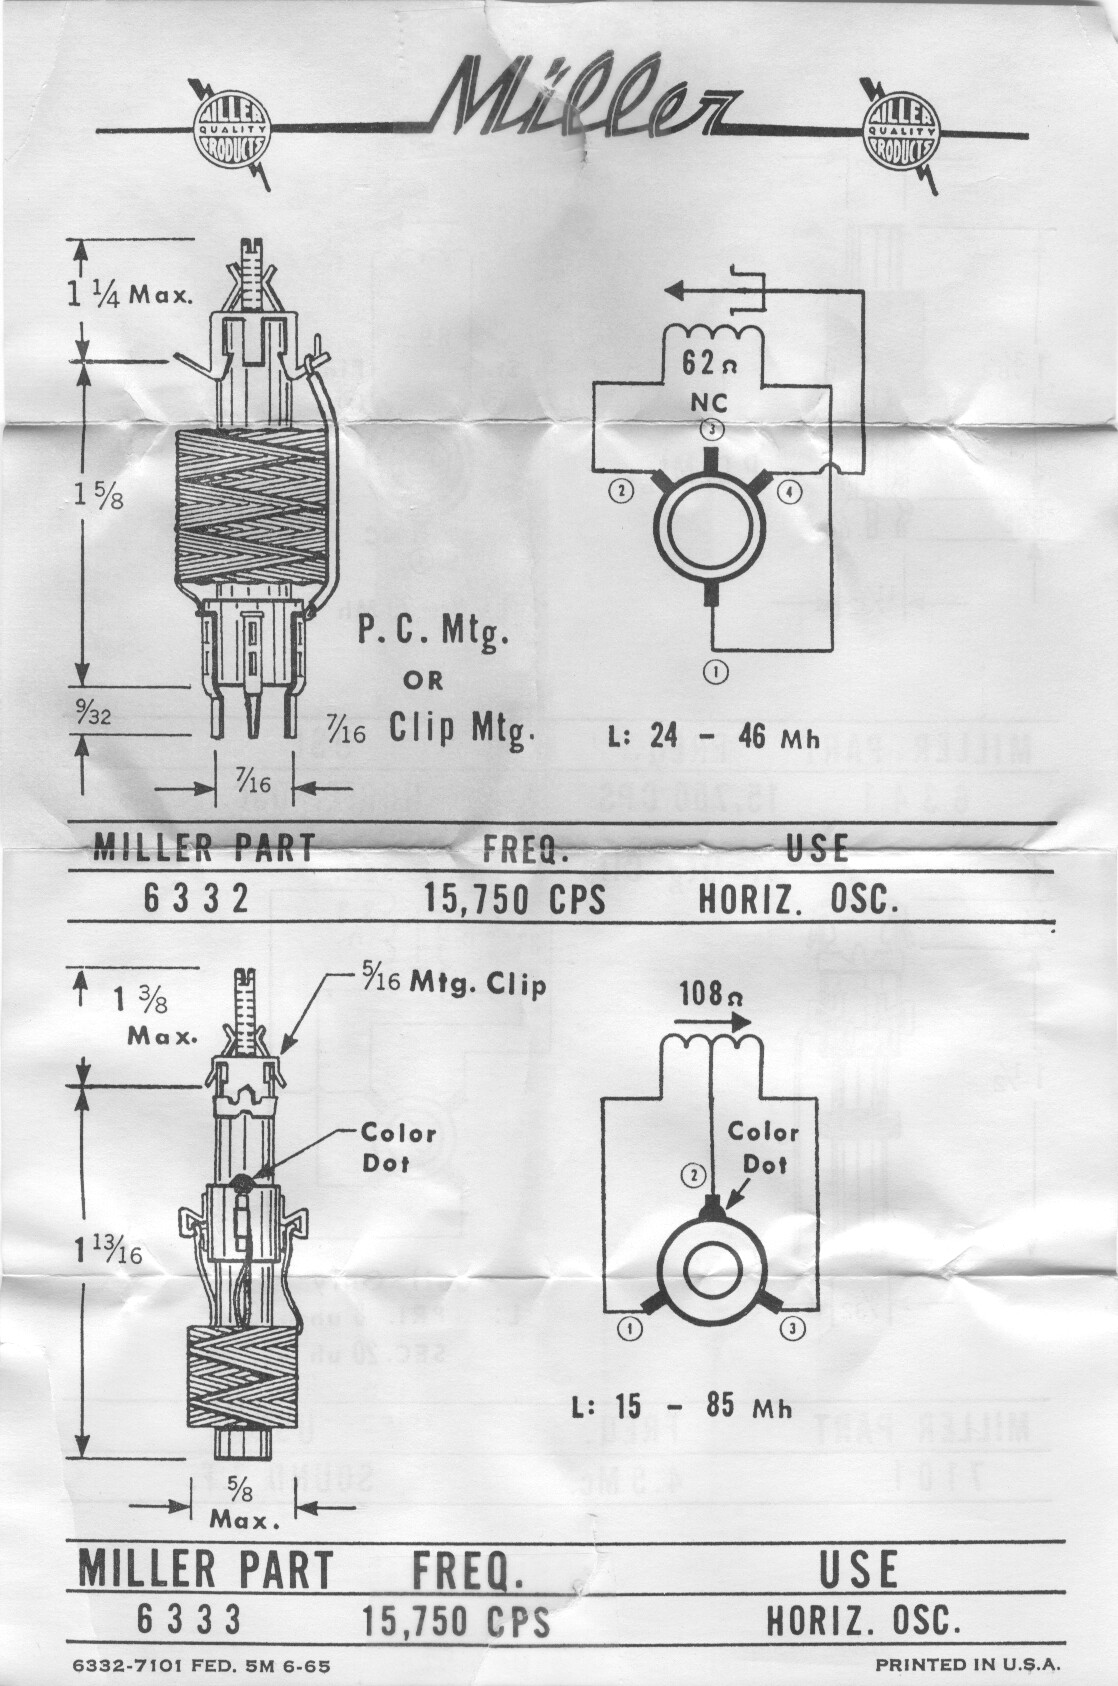 Power Converter Wfco 8725 Wiring Diagram | Wiring Liry on